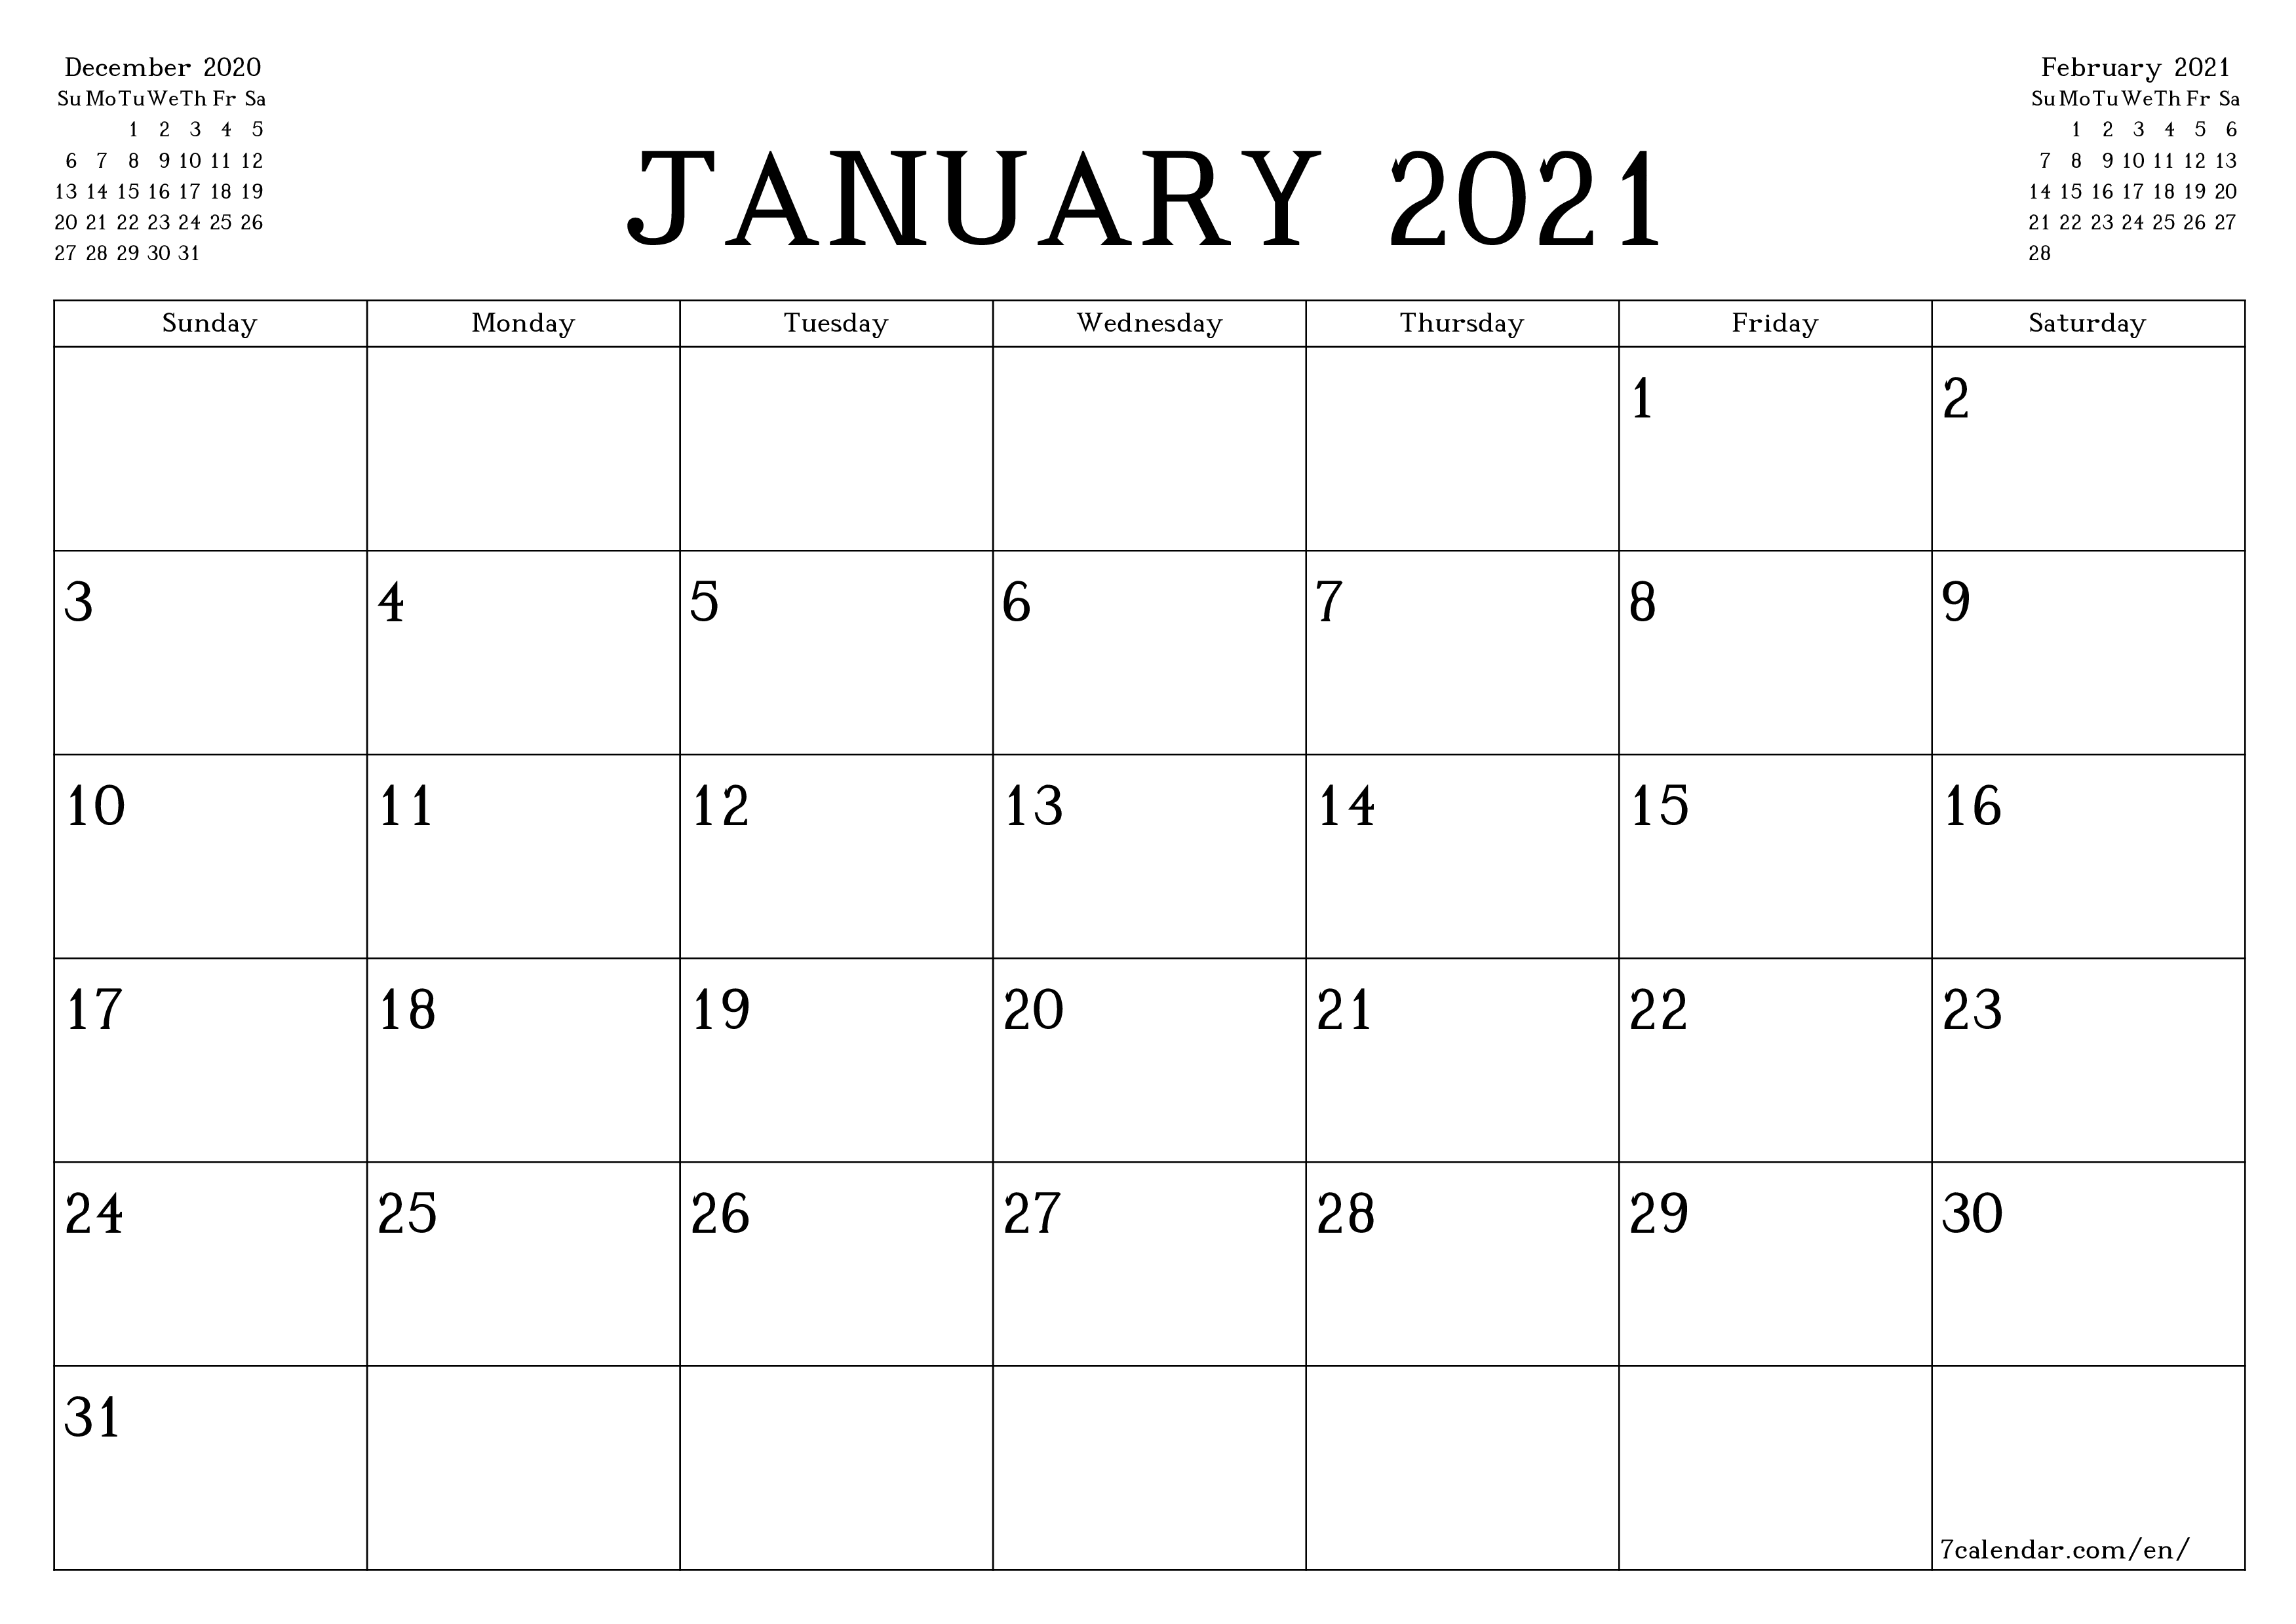 Blank monthly calendar planner for month January 2021 with notes save and print to PDF  - 7calendar.com